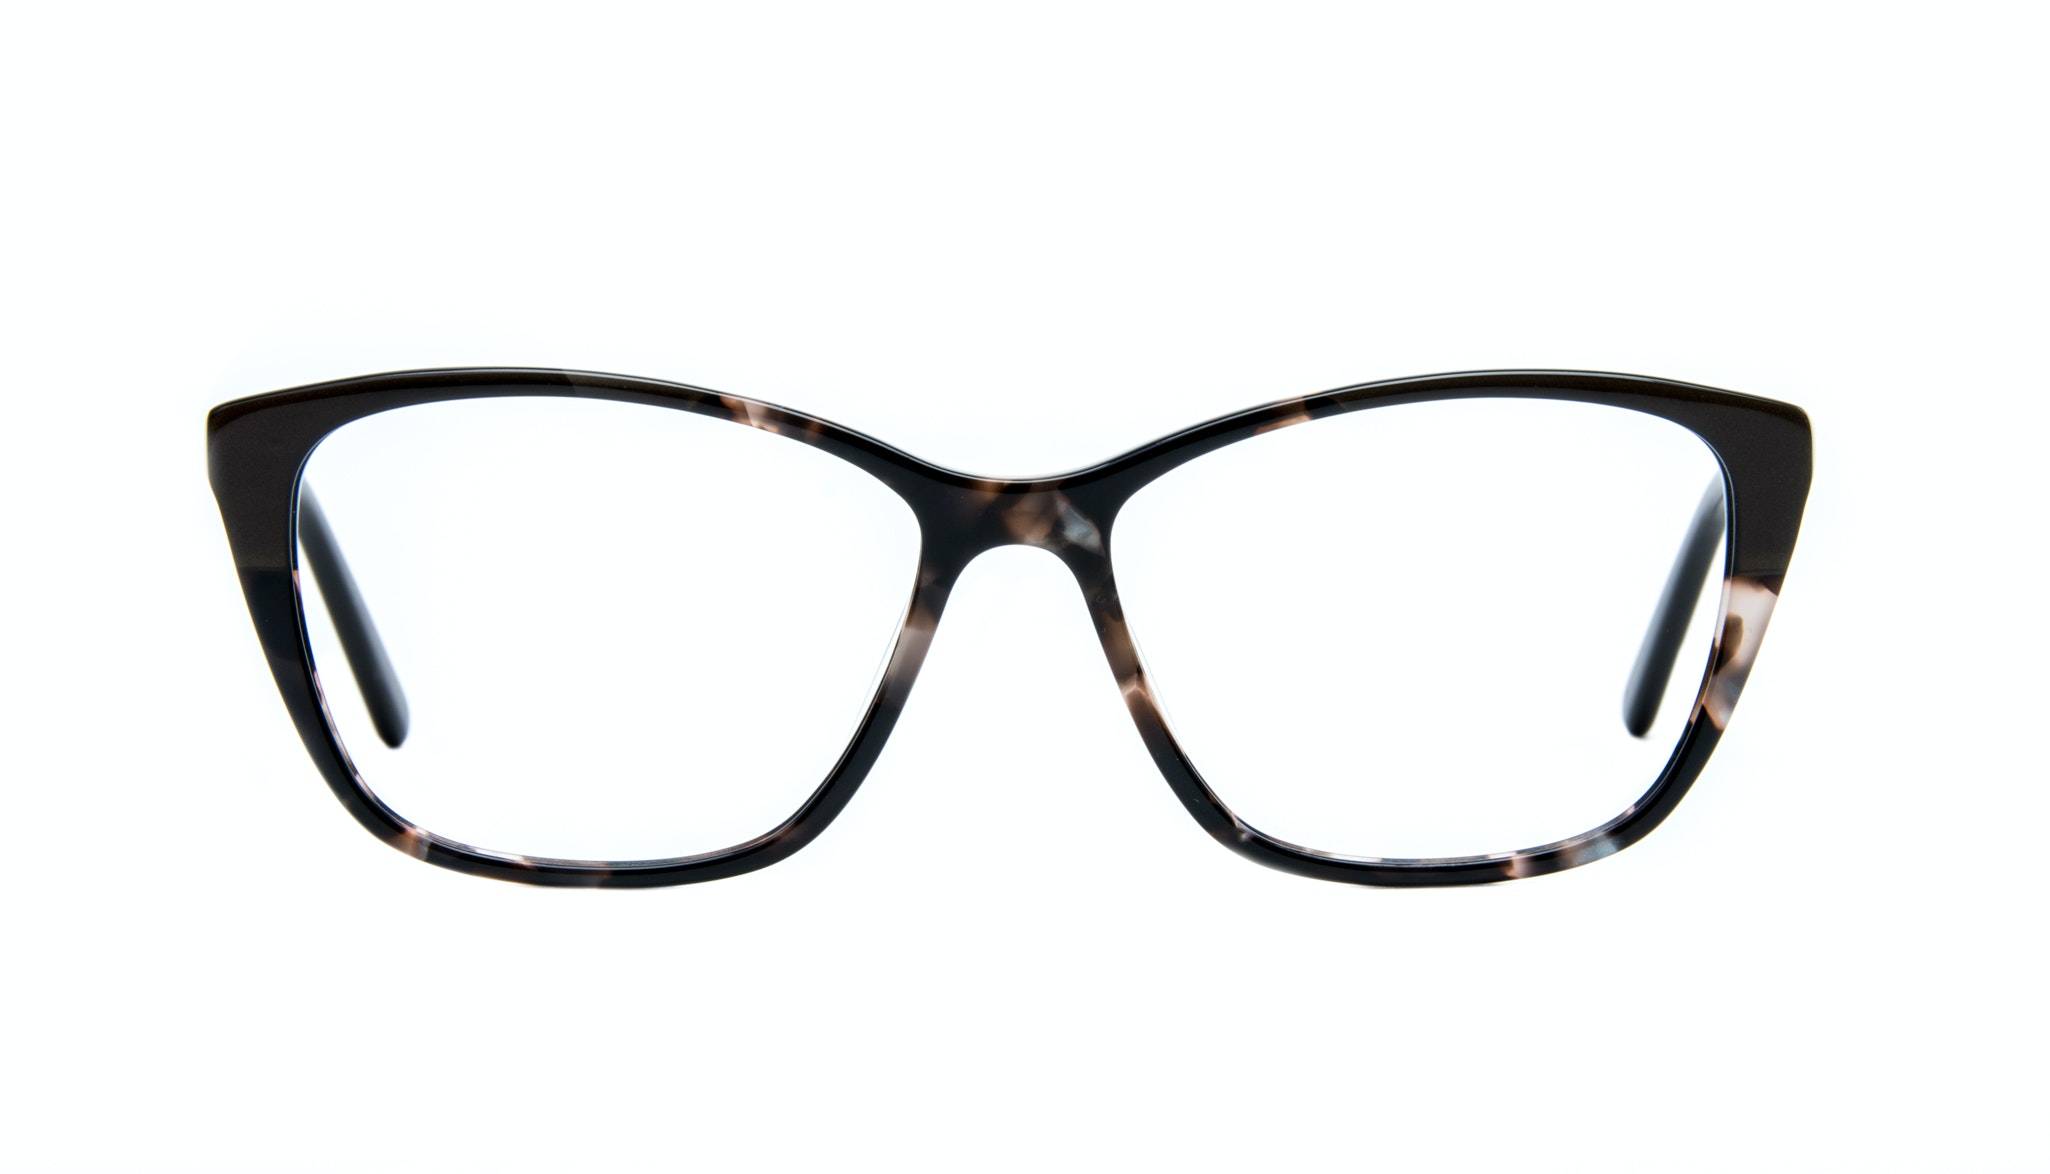 Affordable Fashion Glasses Cat Eye Rectangle Eyeglasses Women Myrtle Grey Stone Front